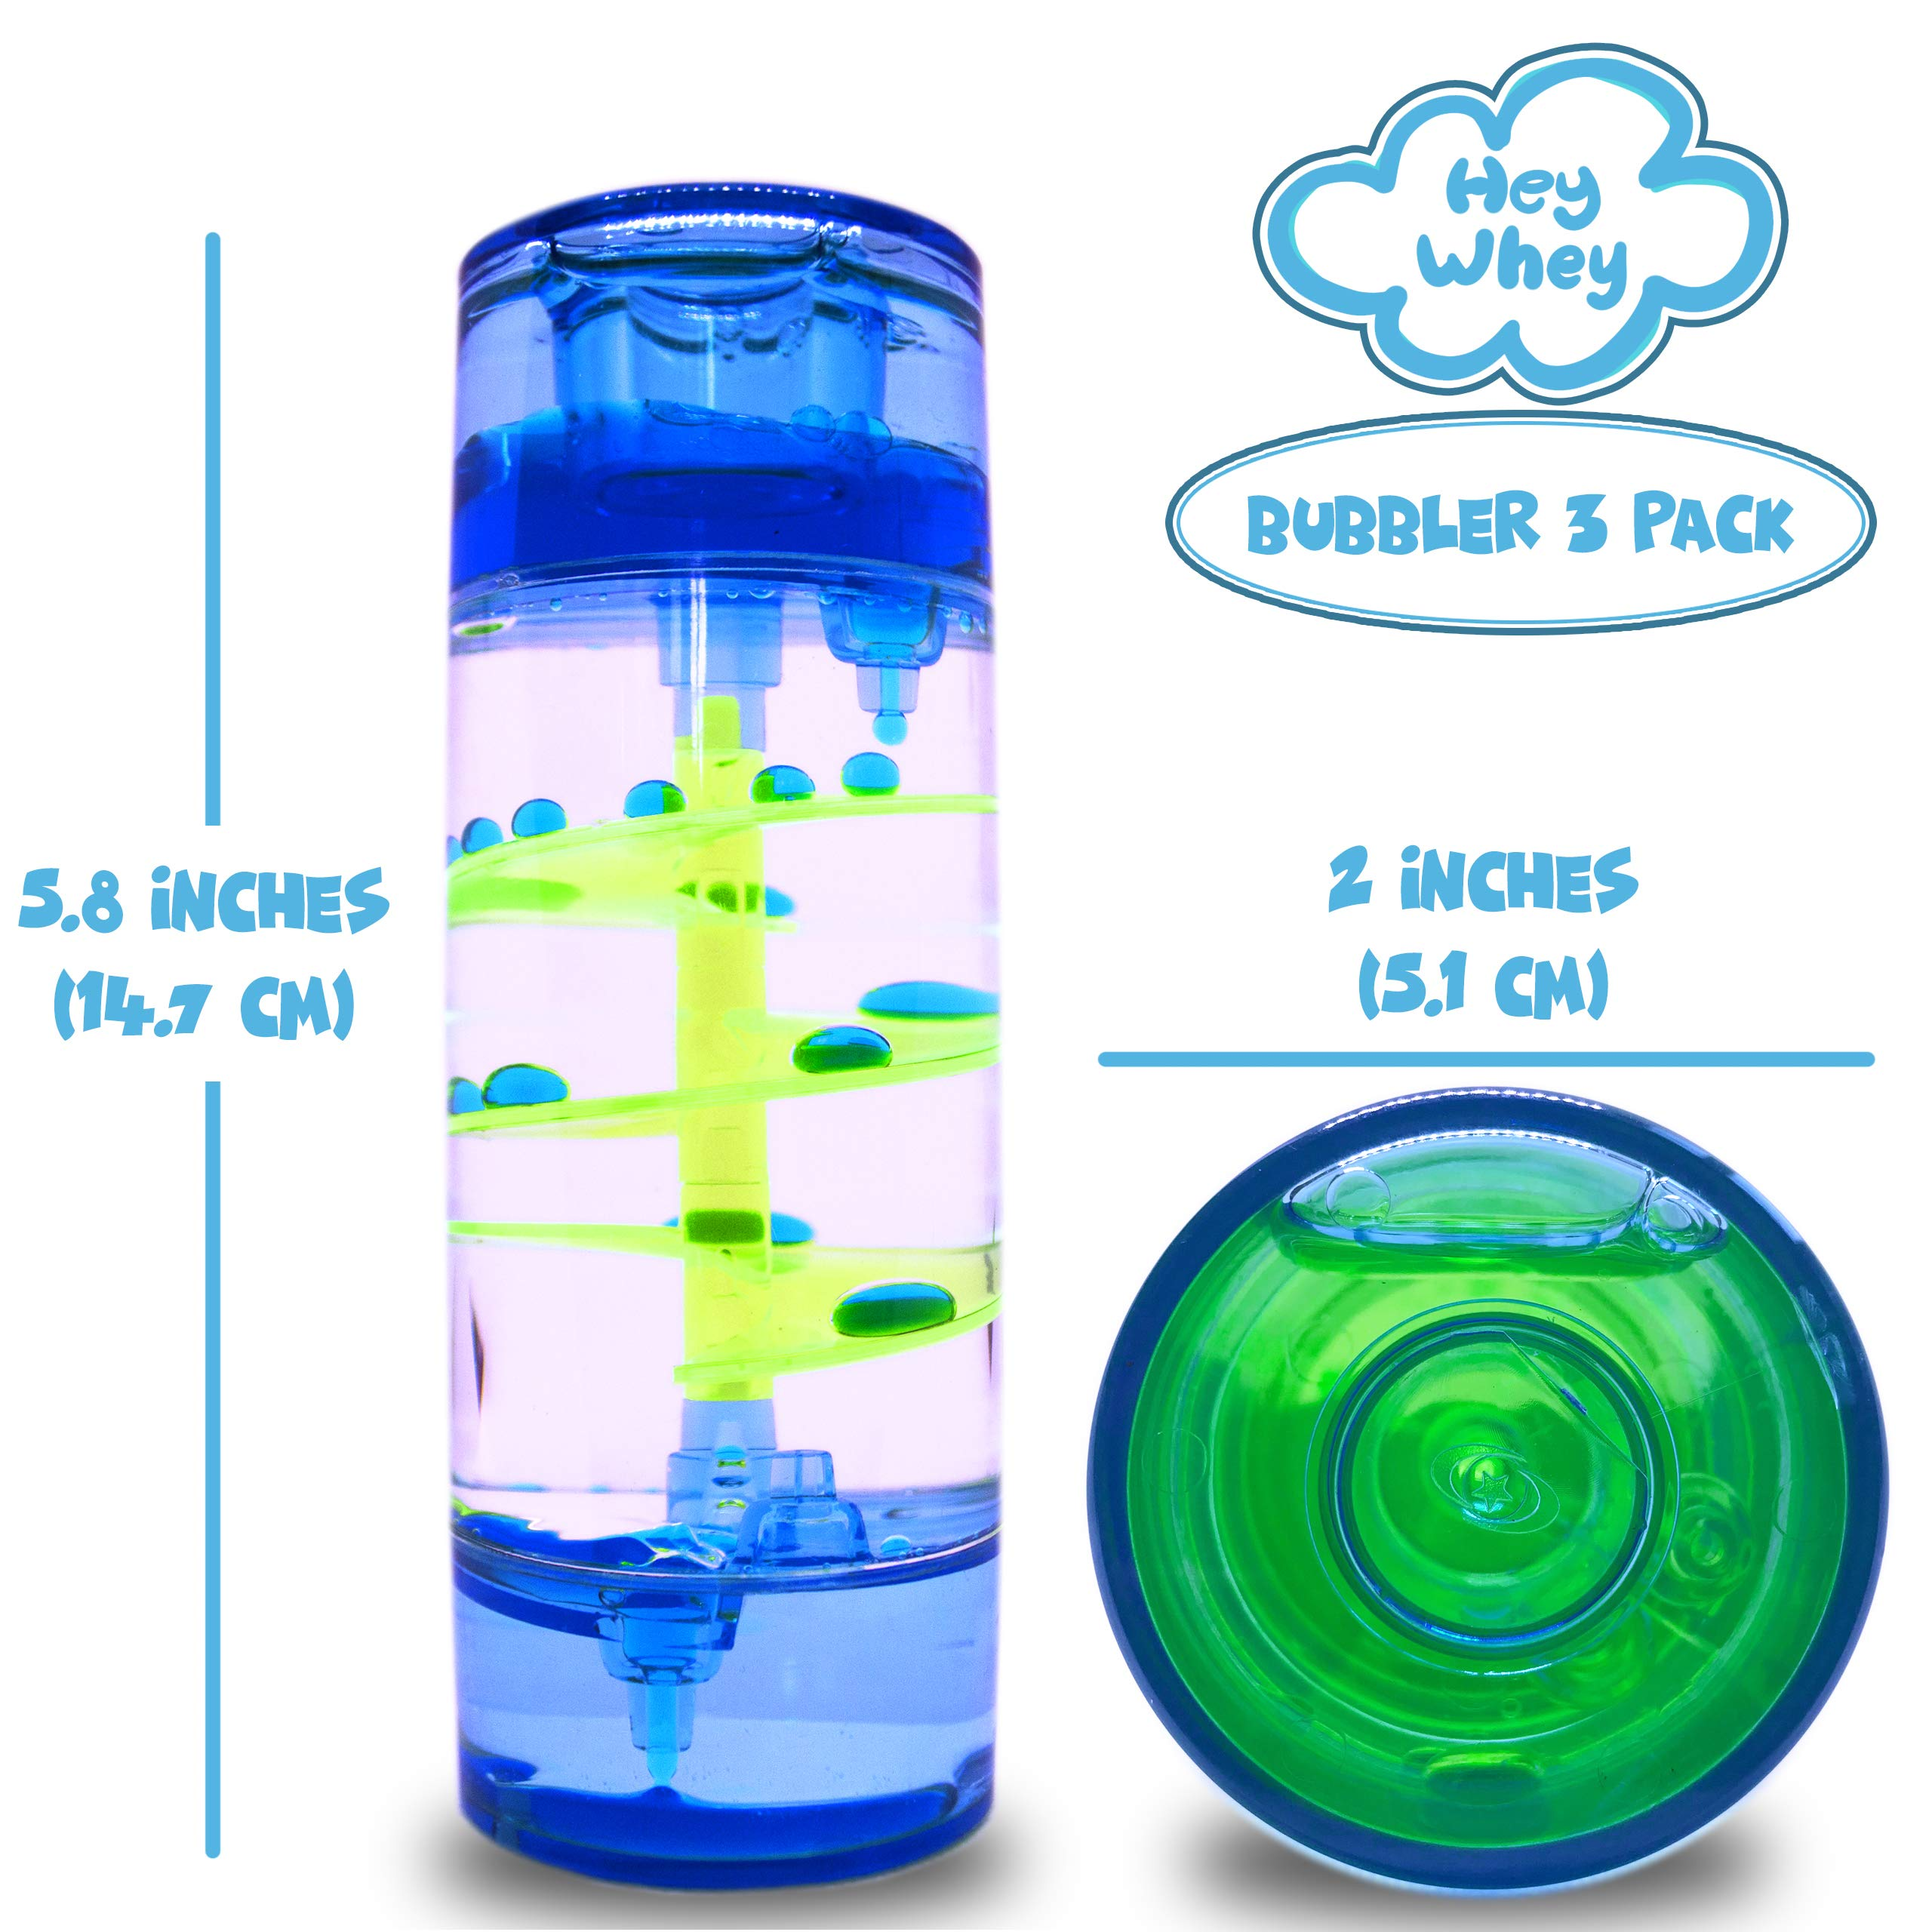 HeyWhey- Liquid Motion Bubbler Timer, 3-Pack Bundle Great for Gifts Parties Holidays, Calm and Relaxing Novelty Desk Toy, Sensory and Fidget Toys for Anxiety Autism ADHD Stress Relief Kids and Adults, by HeyWhey Toys (Image #3)